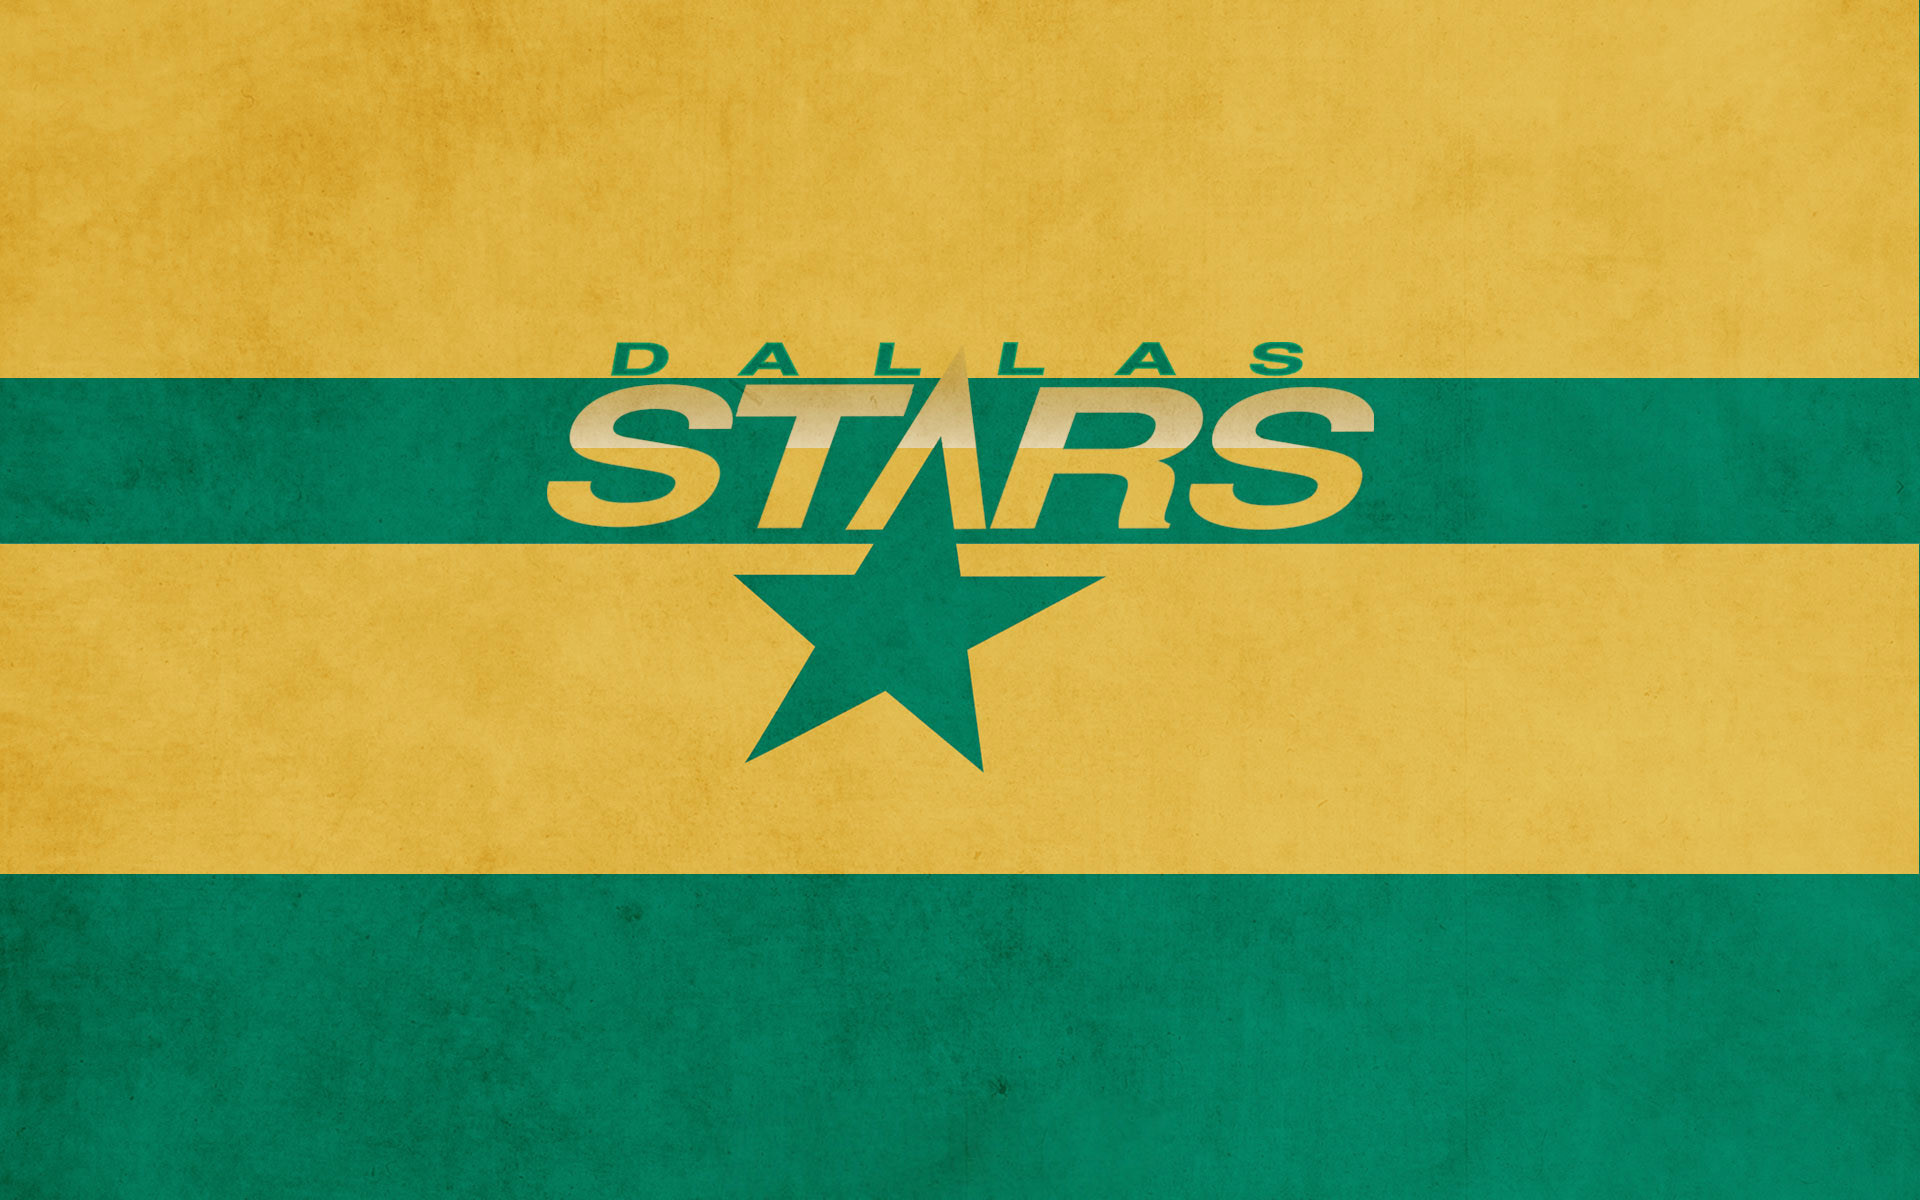 Dallas Stars Backgrounds Free Download.